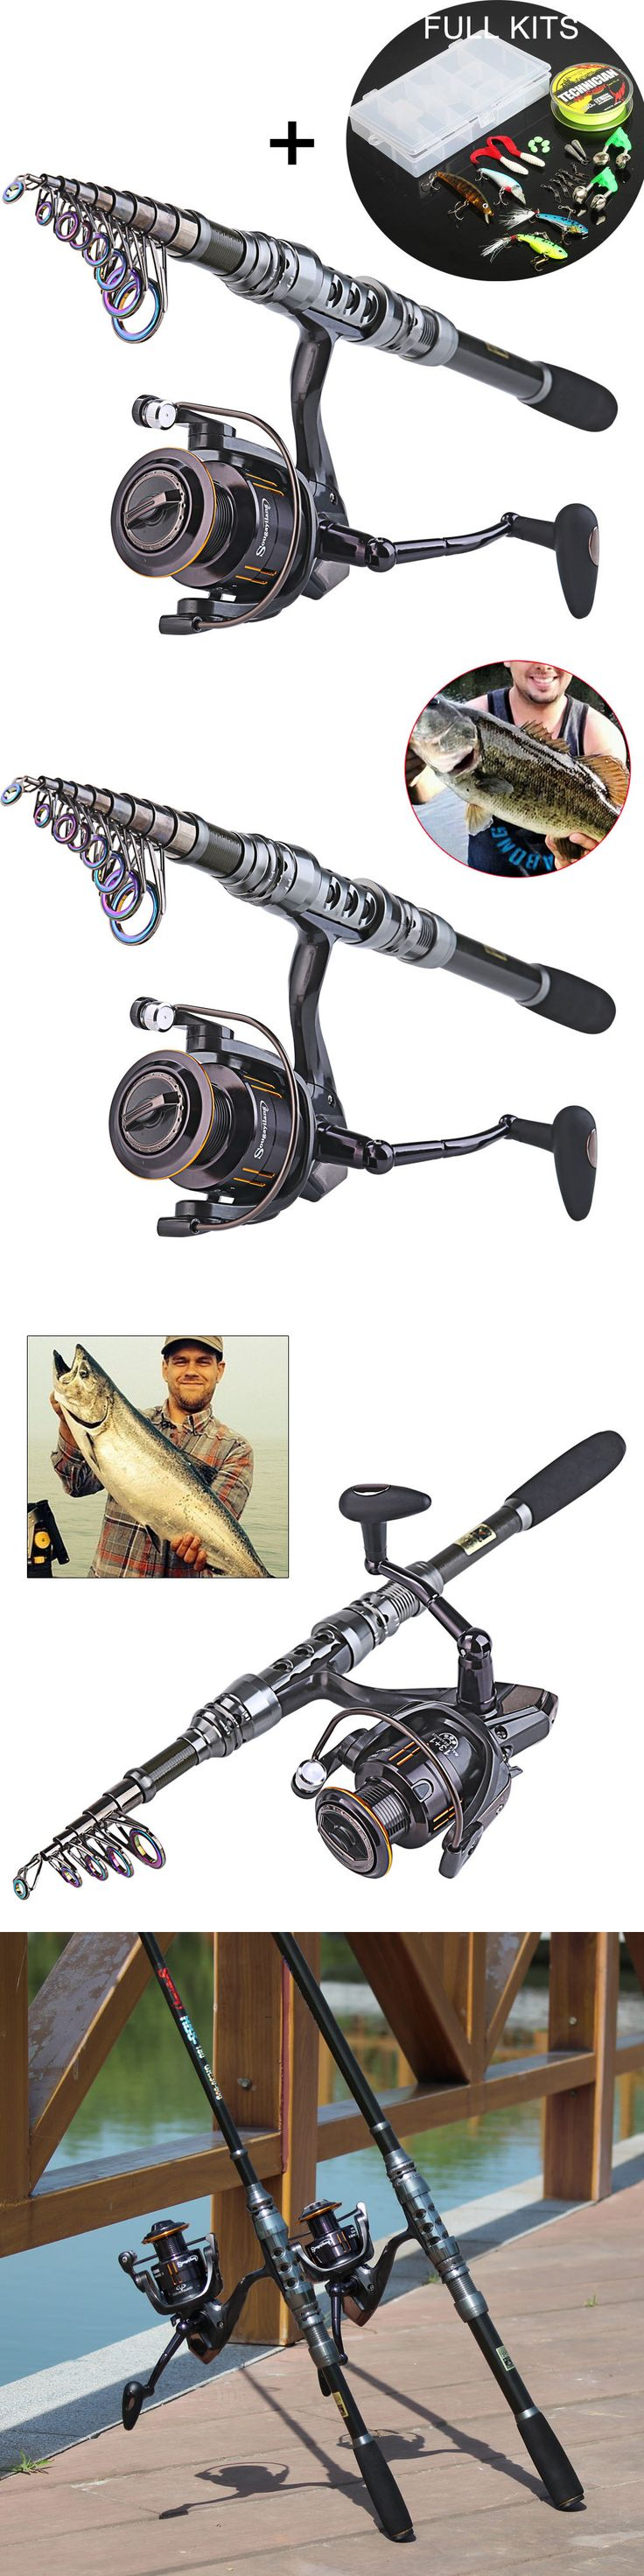 Spincasting Combos 179955: Telescopic Travel Fishing Rod And Fishing Reel Combo Kits 3.0M 9.84Ft+Wq5000 -> BUY IT NOW ONLY: $41.99 on eBay!